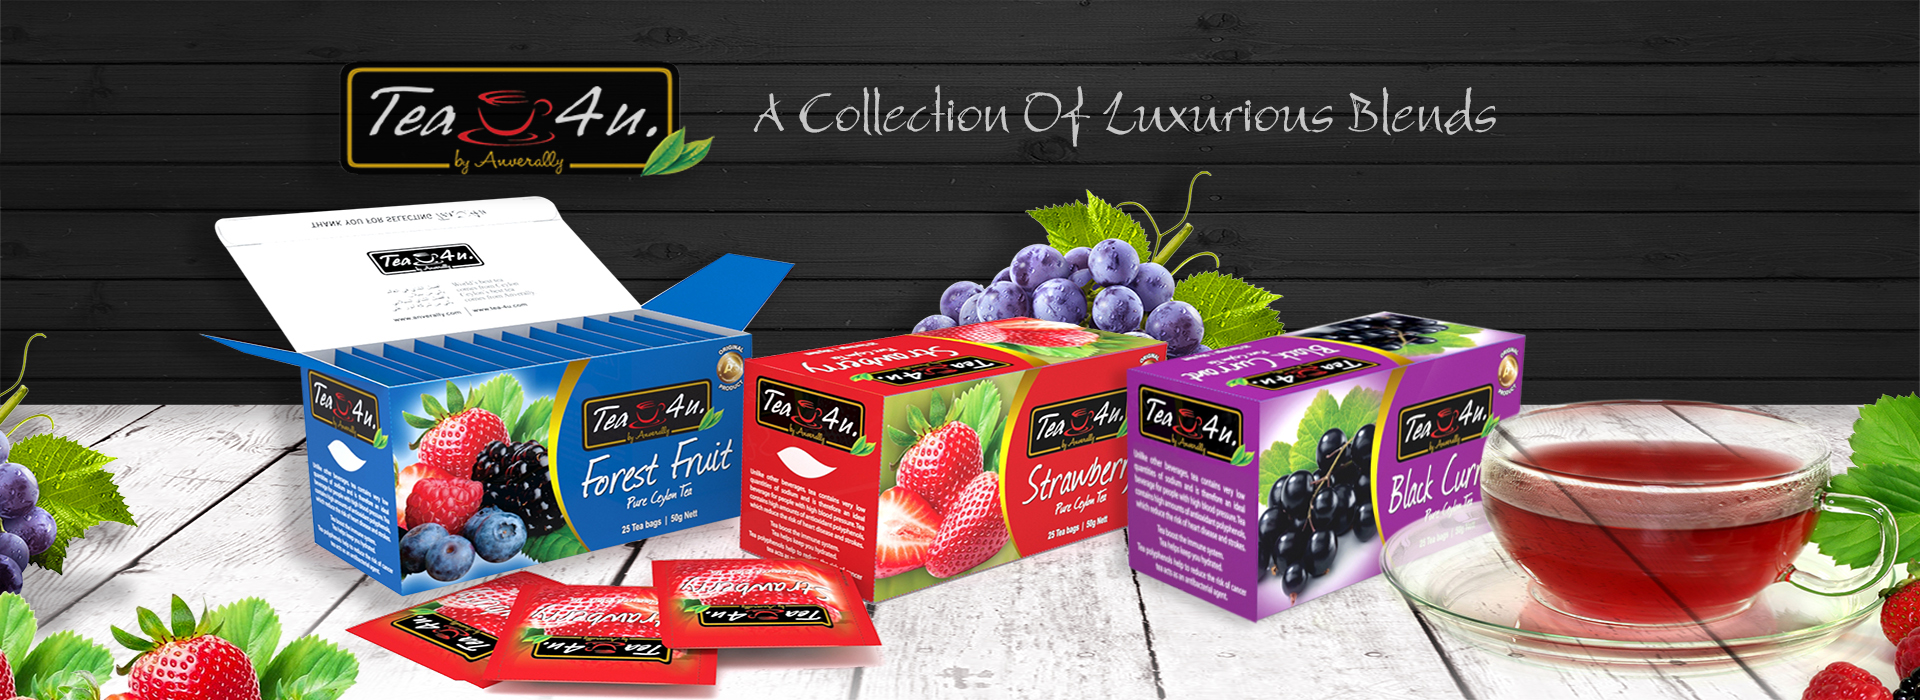 Tea 4 U - A Collection of luxurious Blends